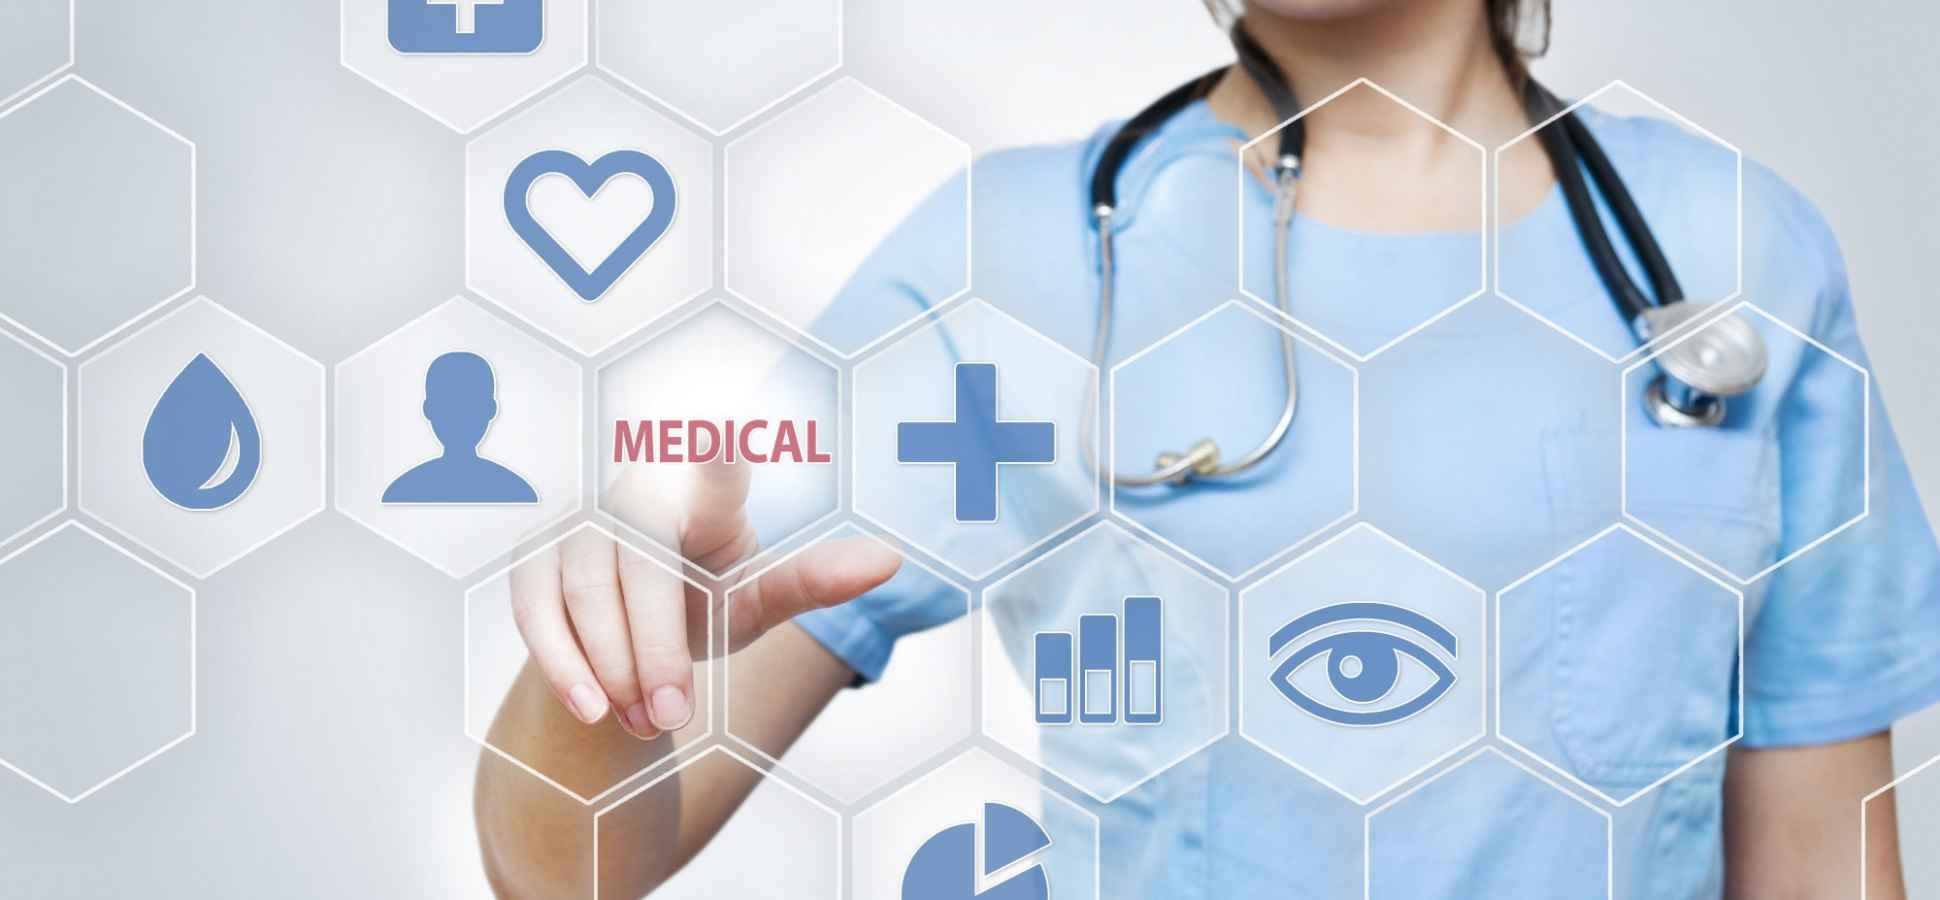 3 Ways Big Data and Analytics are Making Big Changes in Healthcare